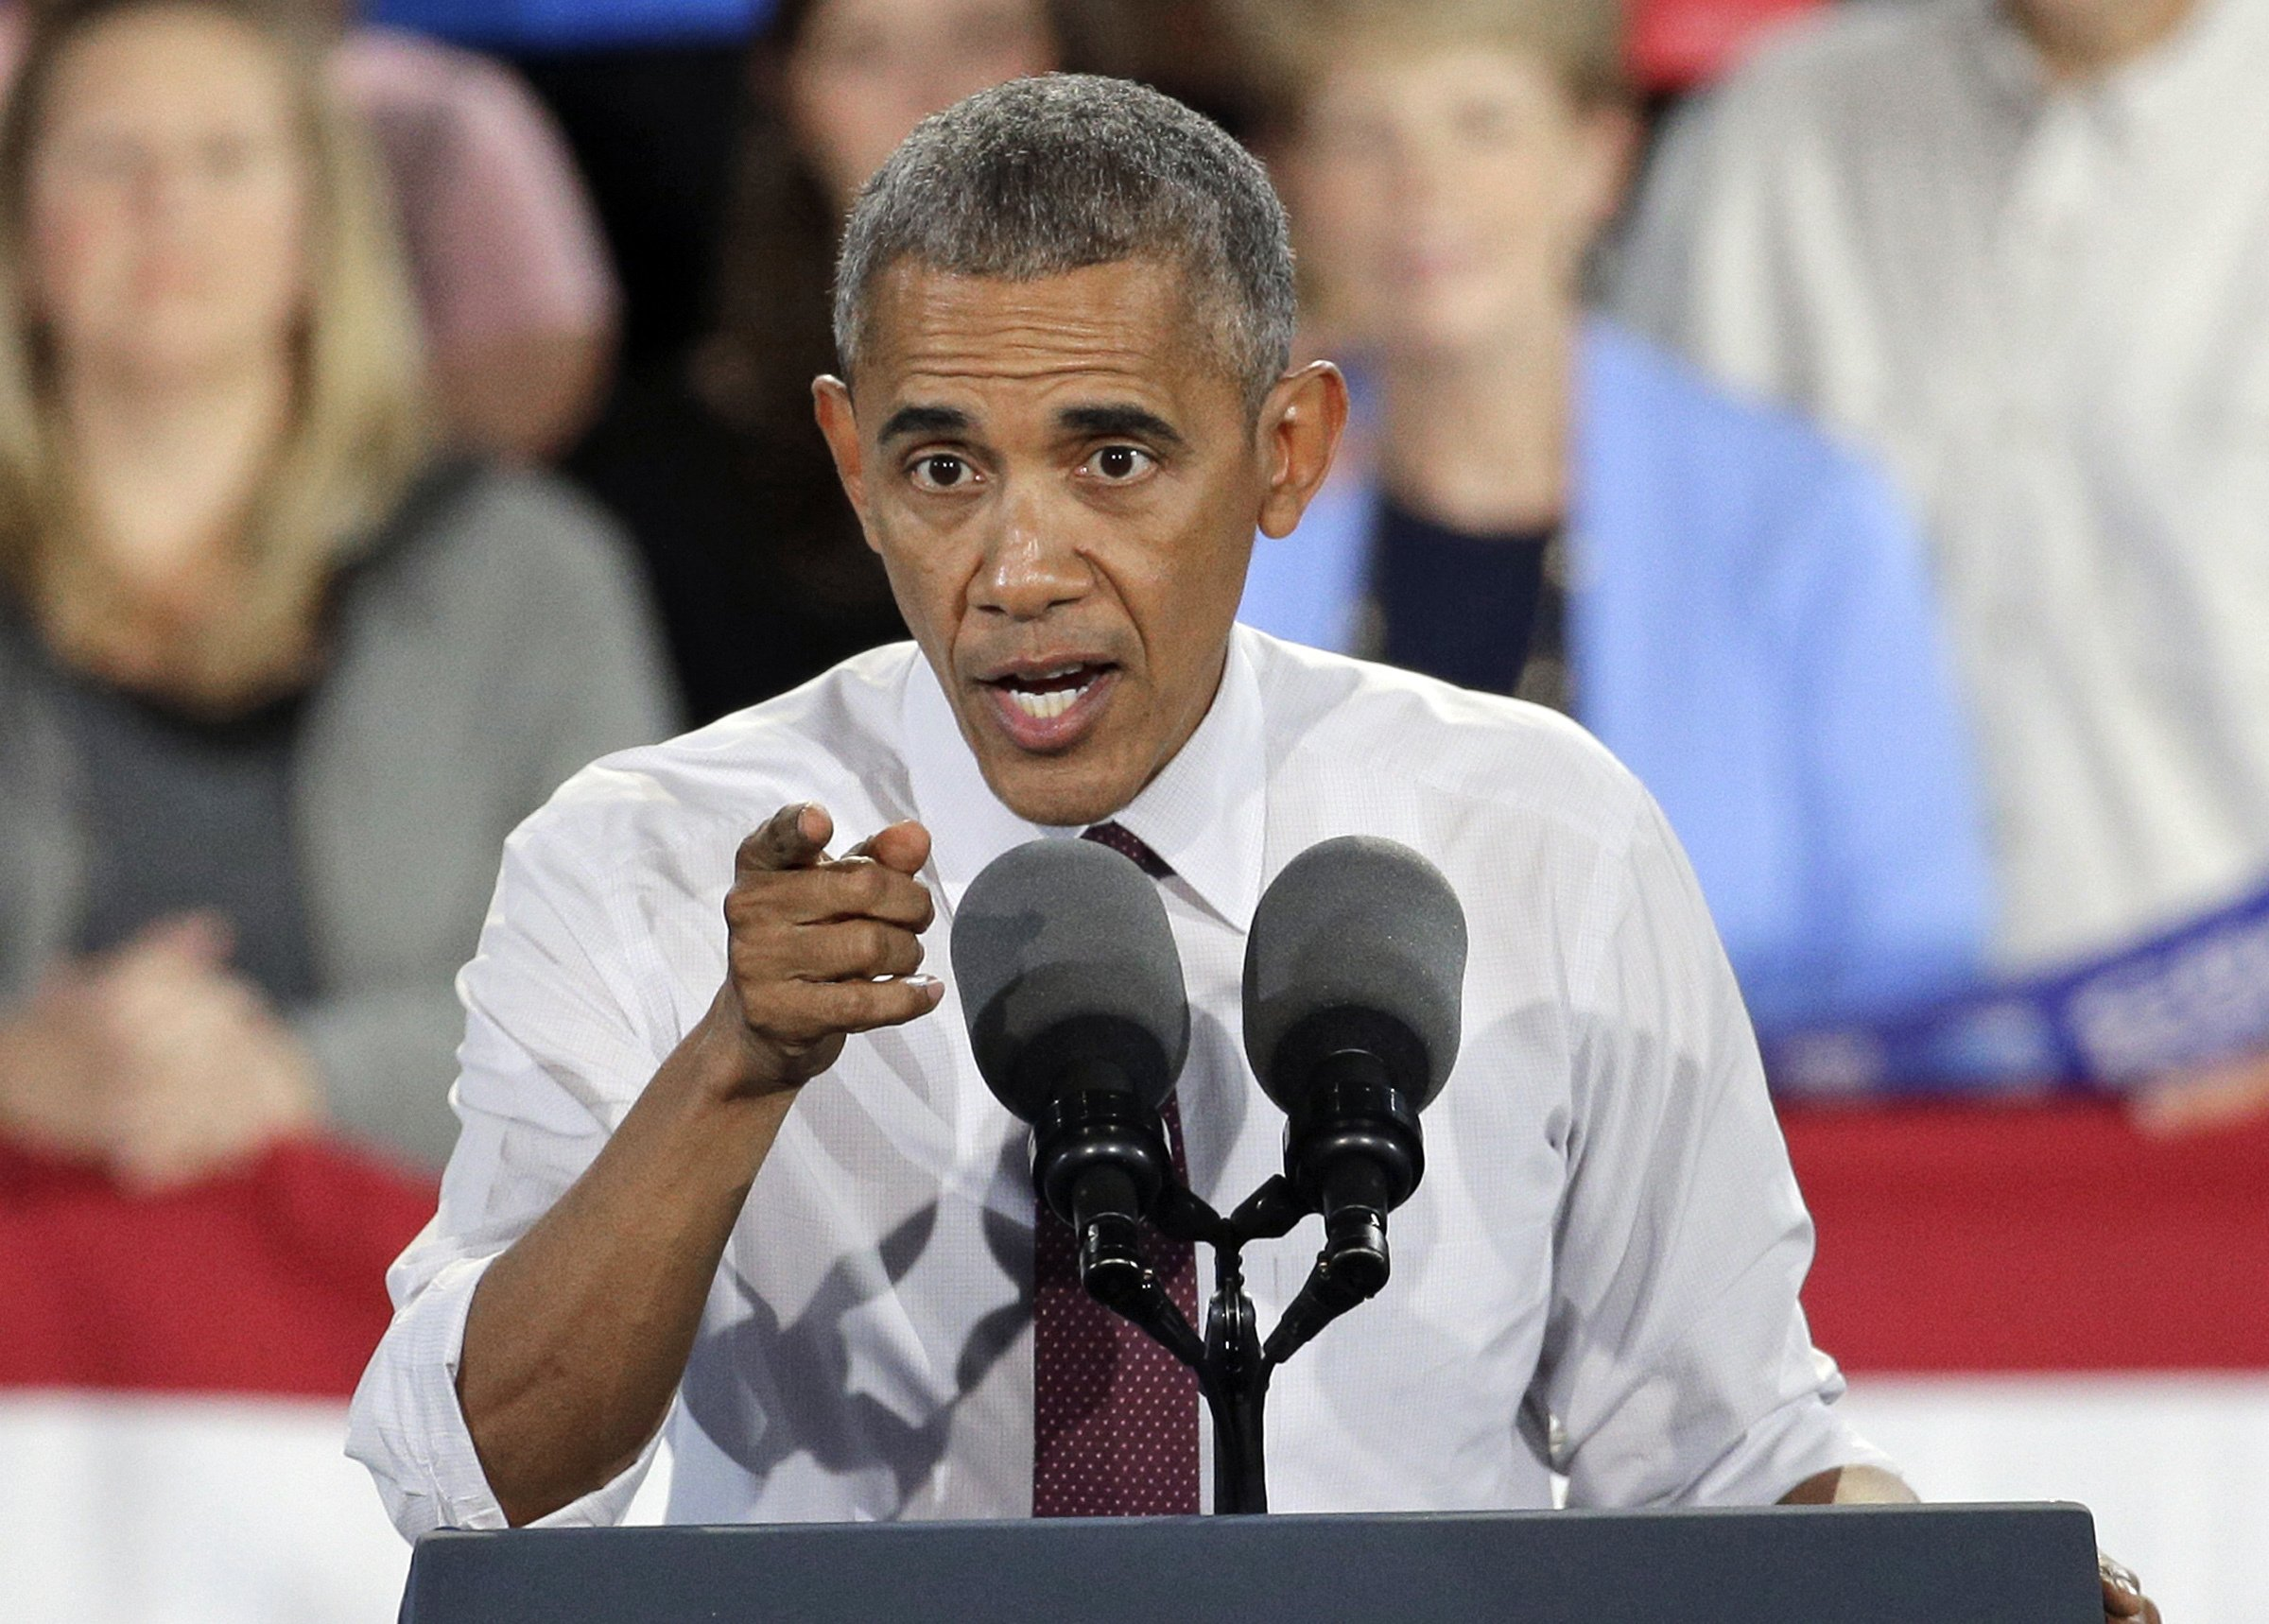 Barack Obama told off a Clinton rally for booing an elderly Trump-supporting veteran